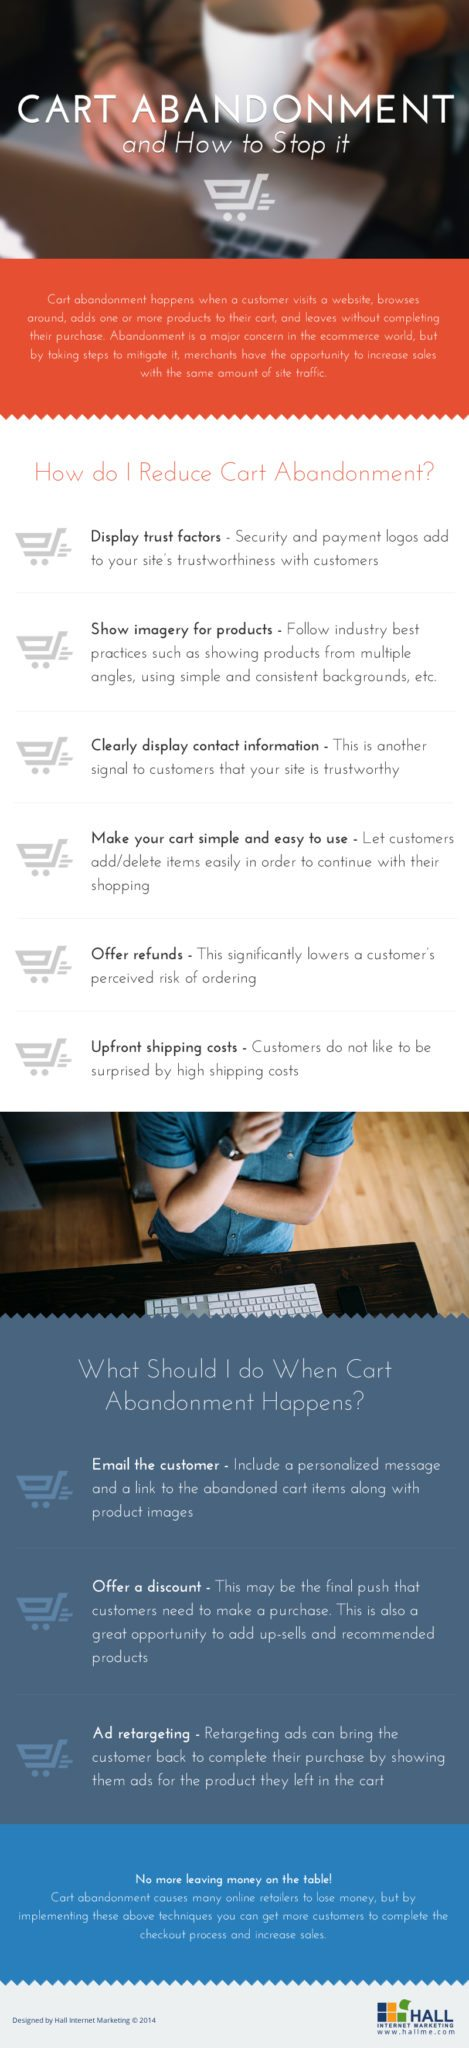 cart-abandonment-infographic